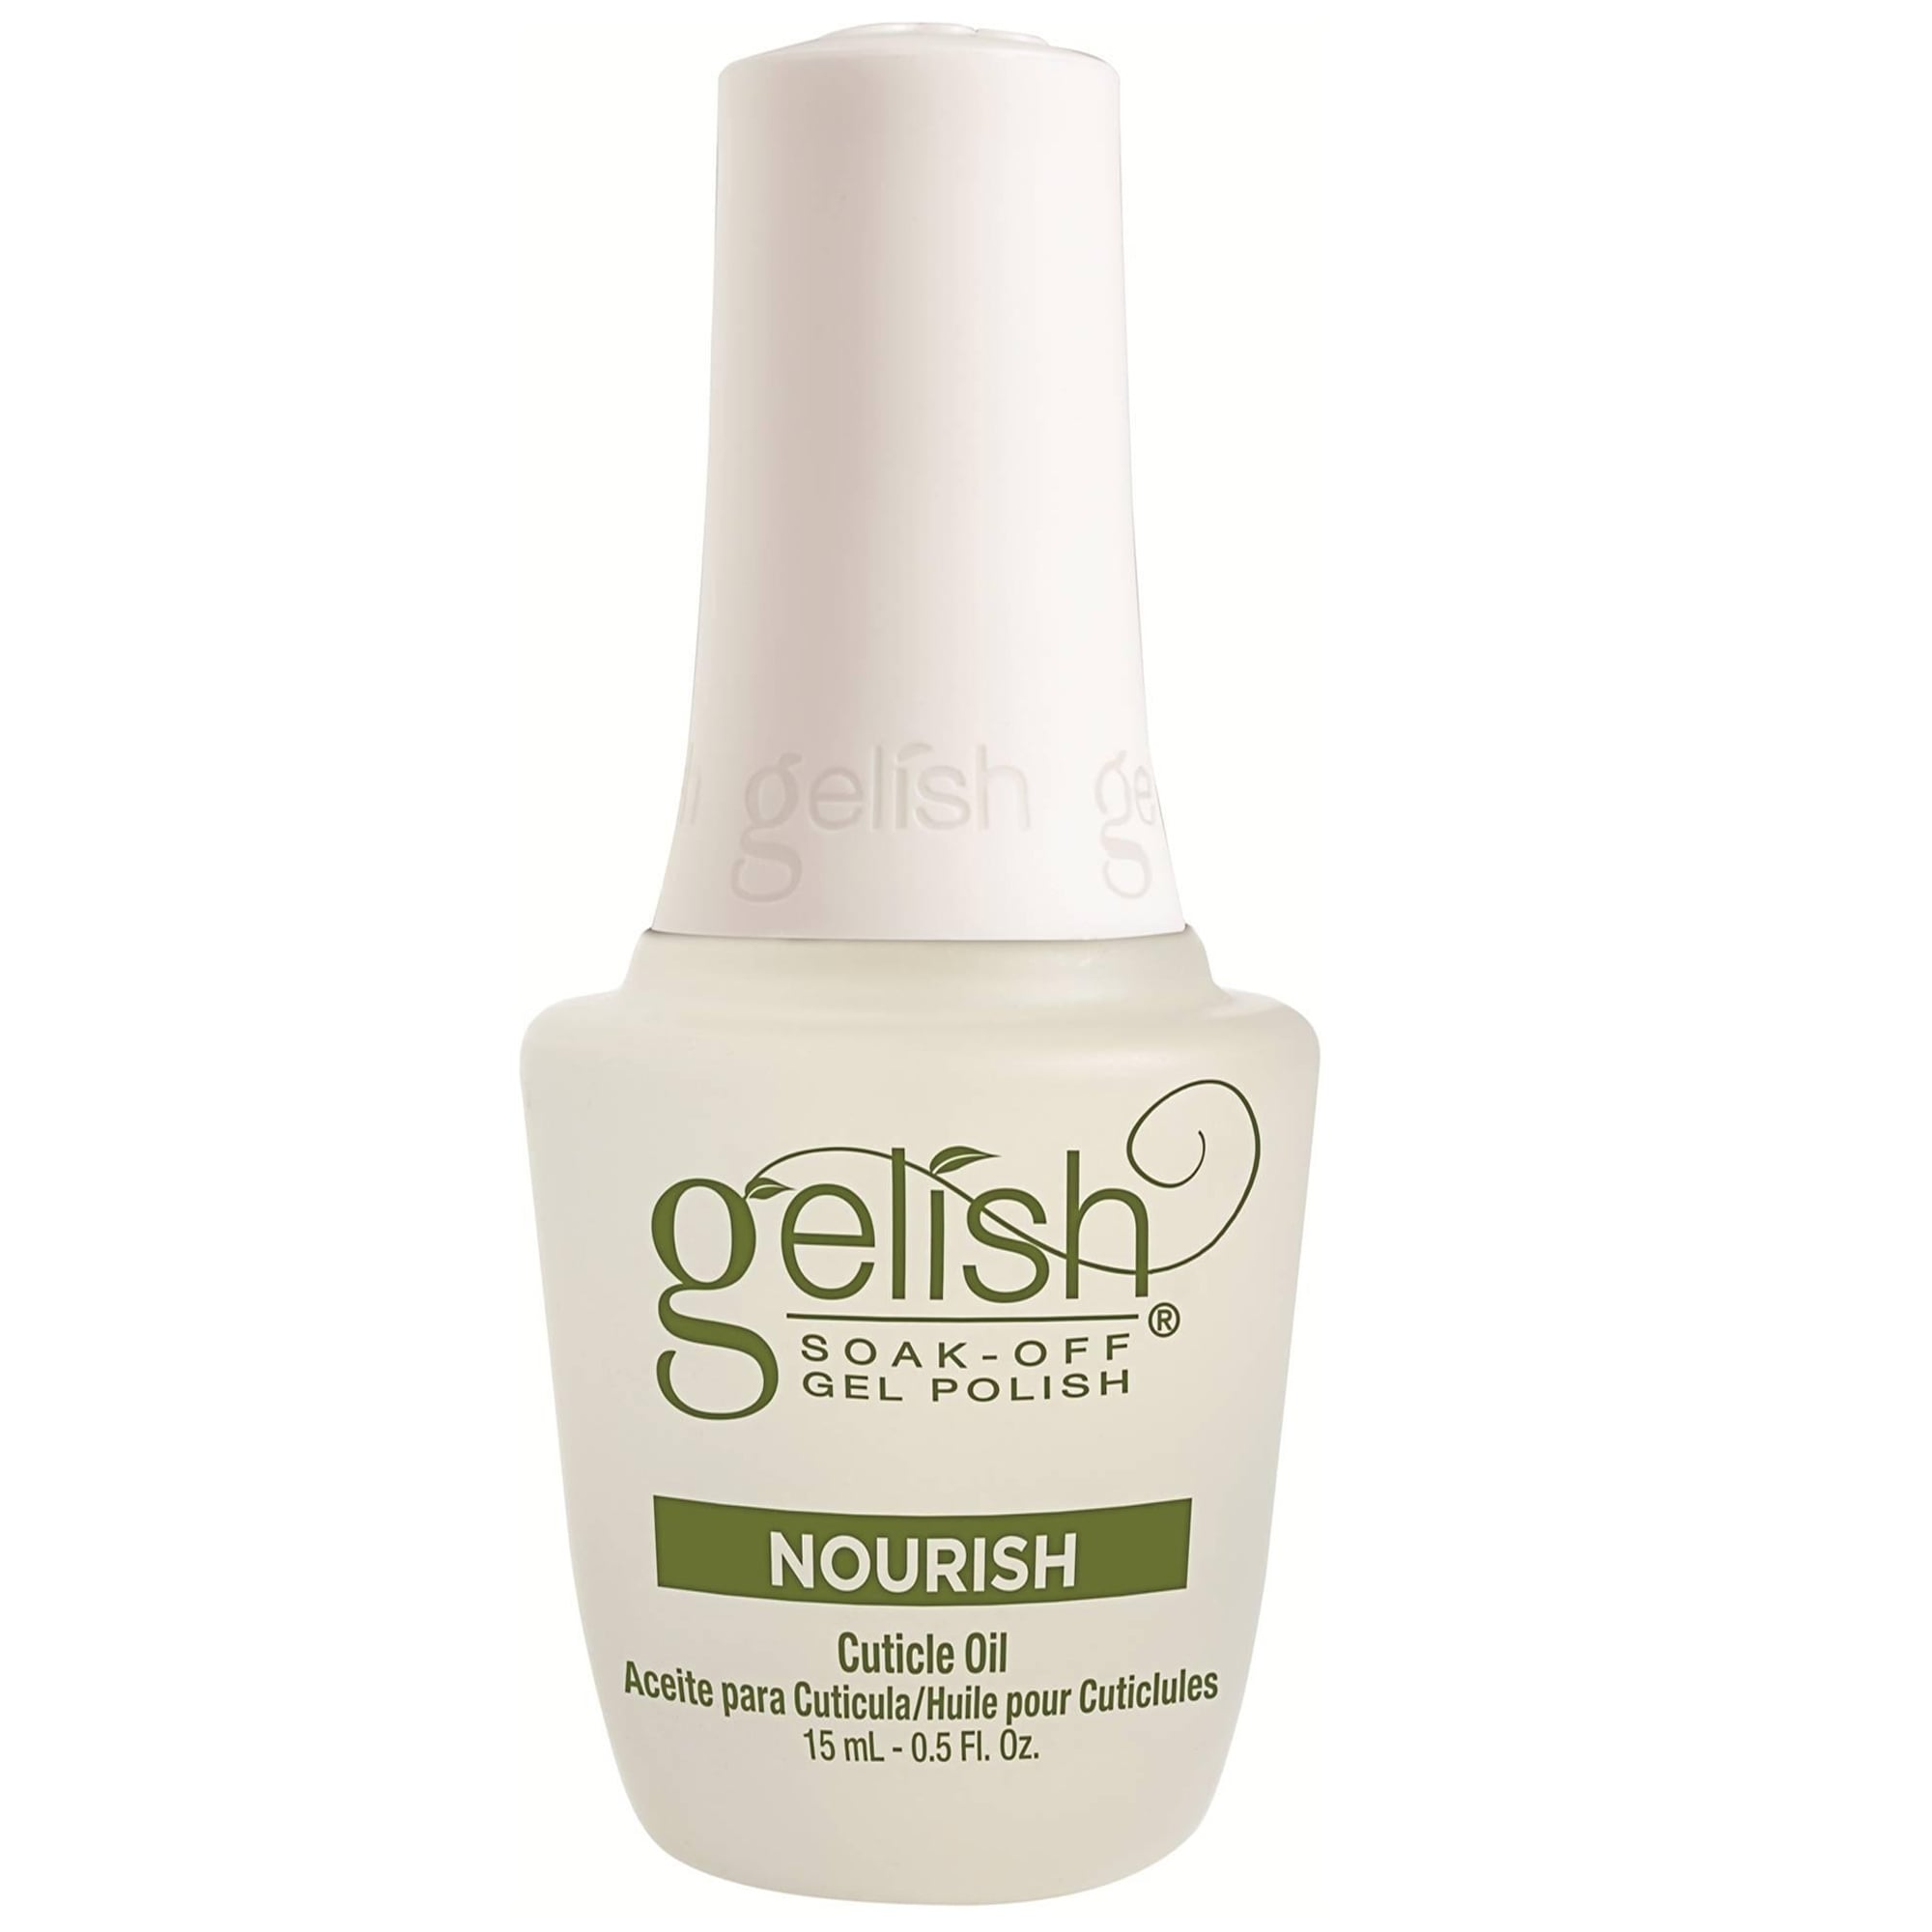 Gelish Soak-Off Gel Nail Polish - Nourish Cuticle Oil 15ml